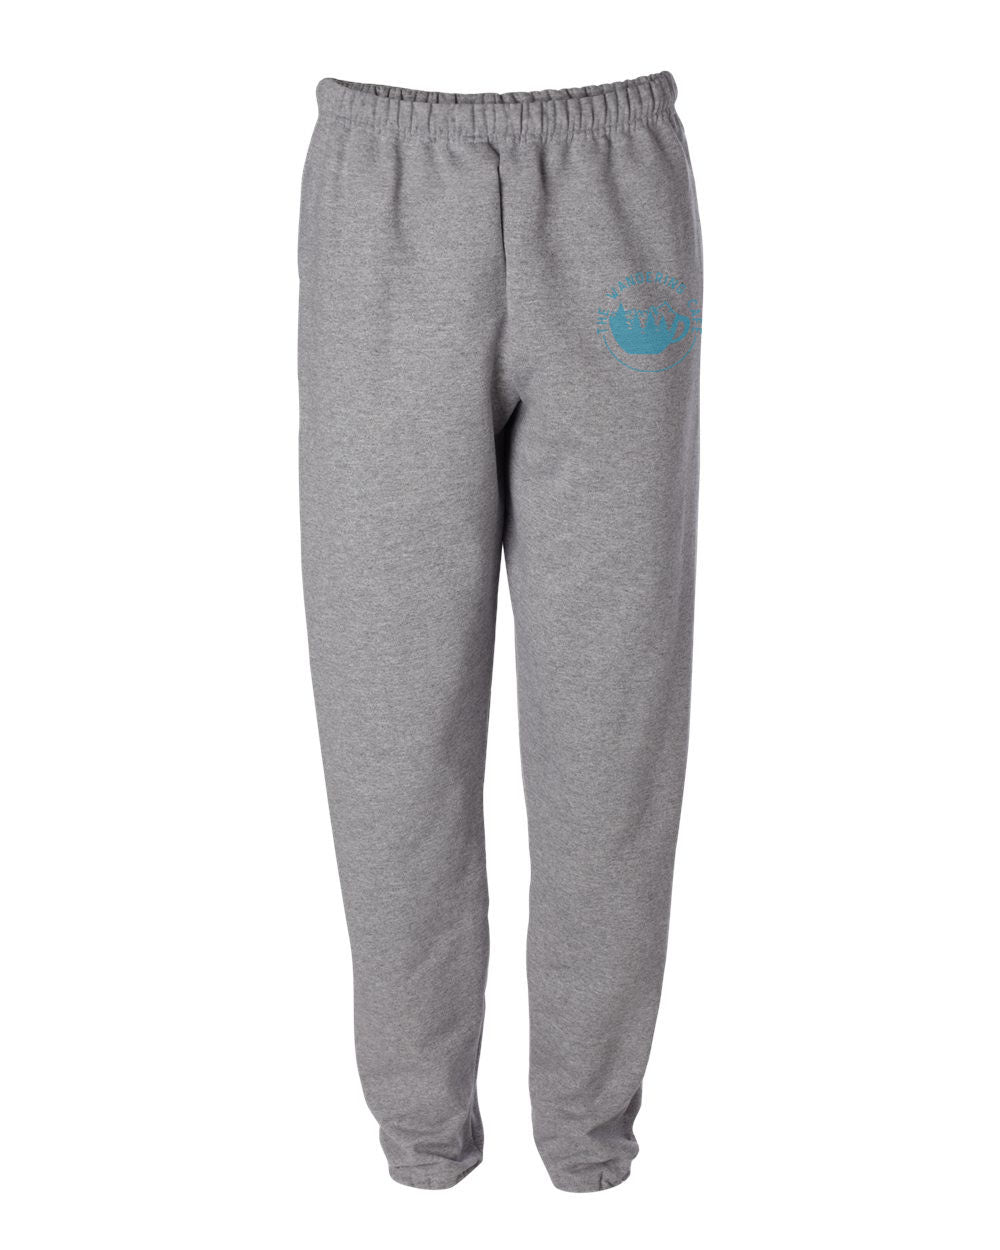 The Wandering Cafe Sweatpants